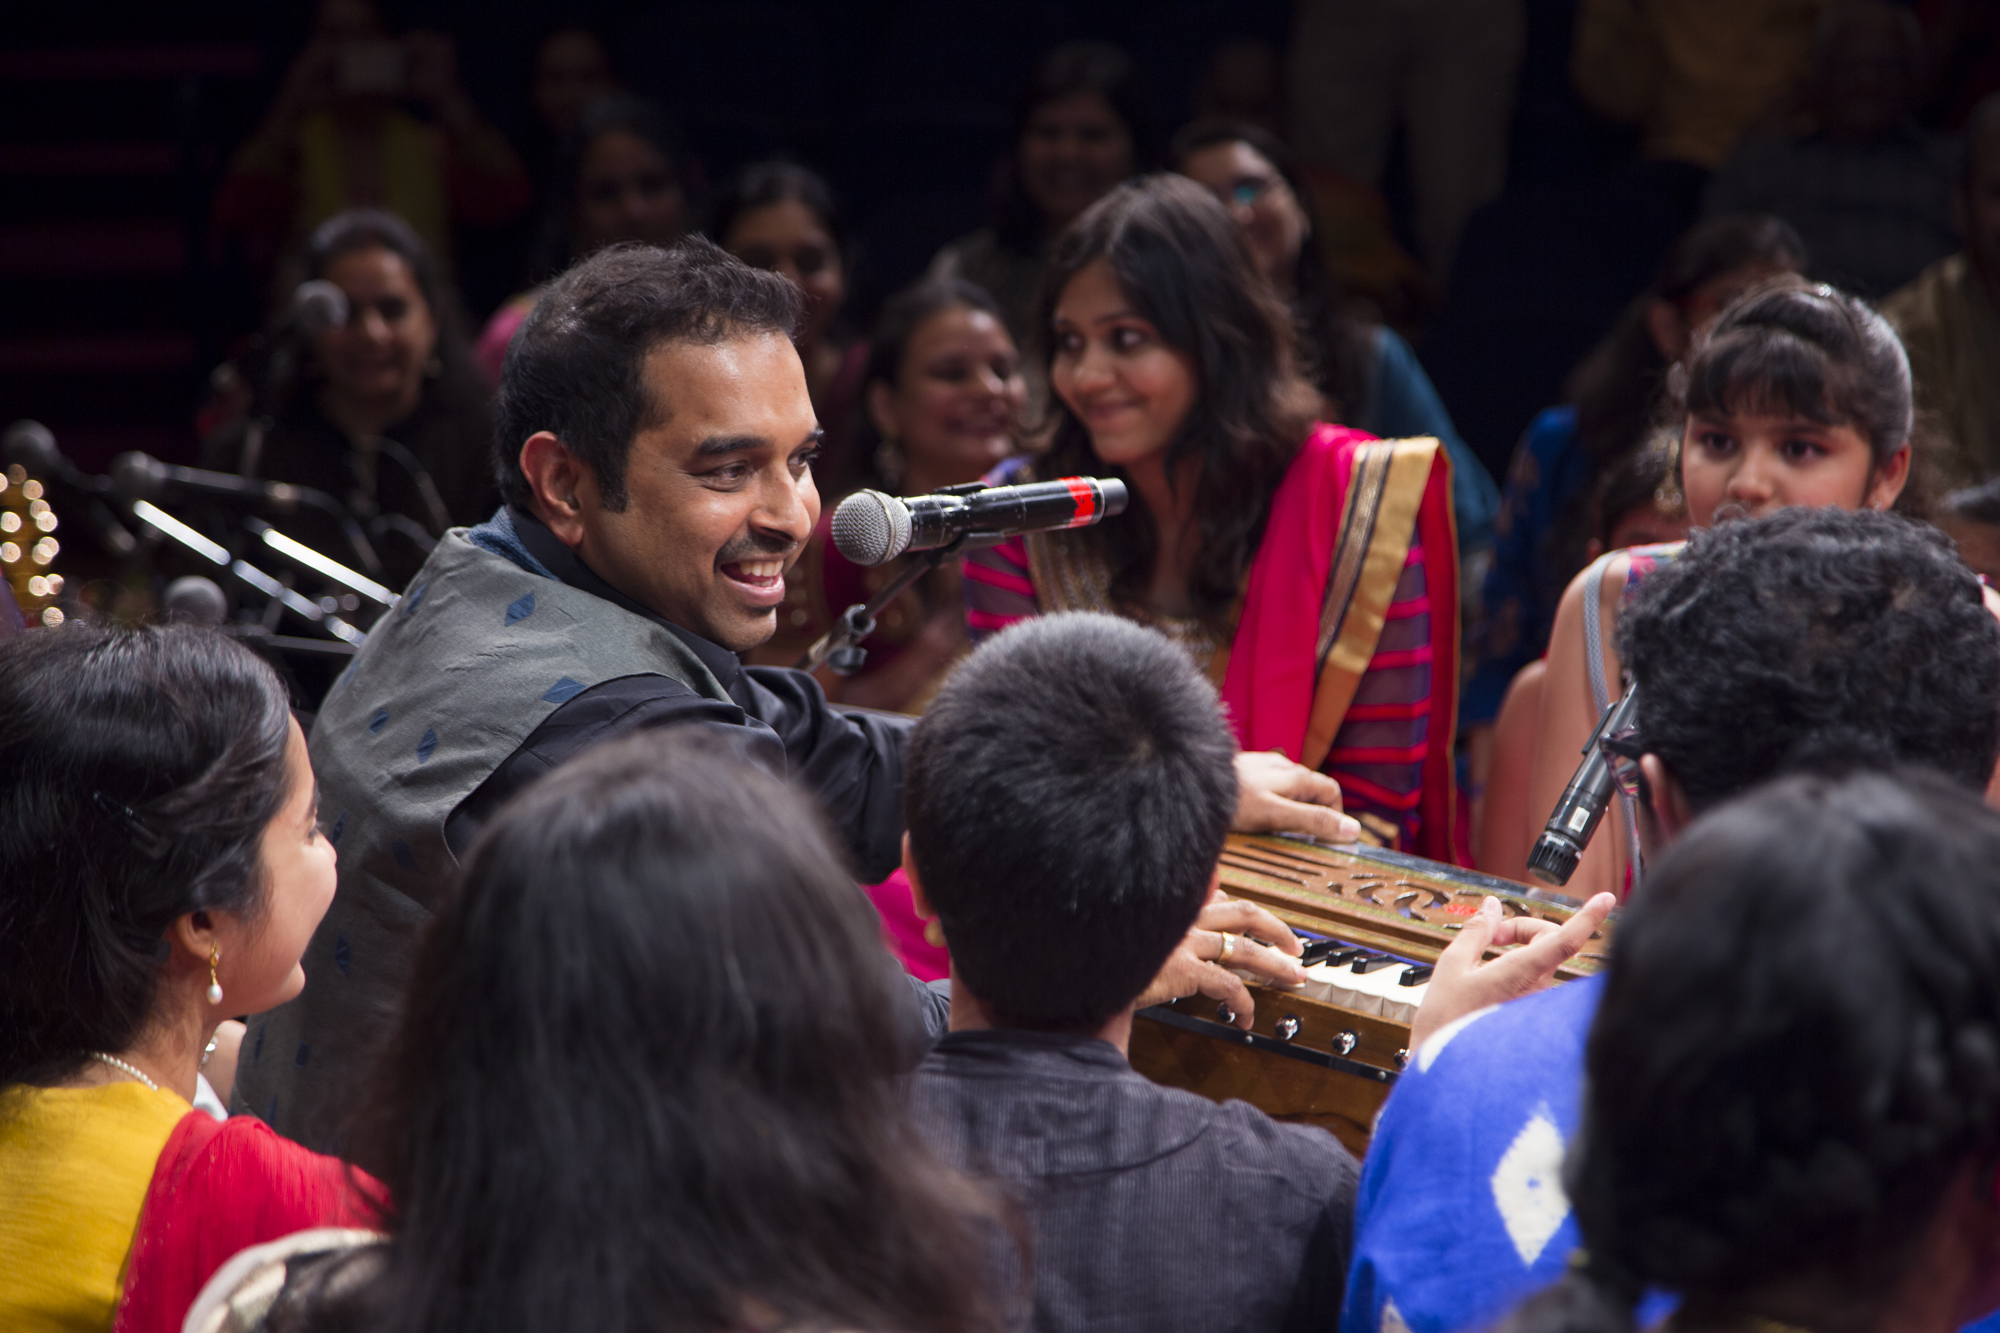 Shankar Mahadevan imparting music lessons to young children.